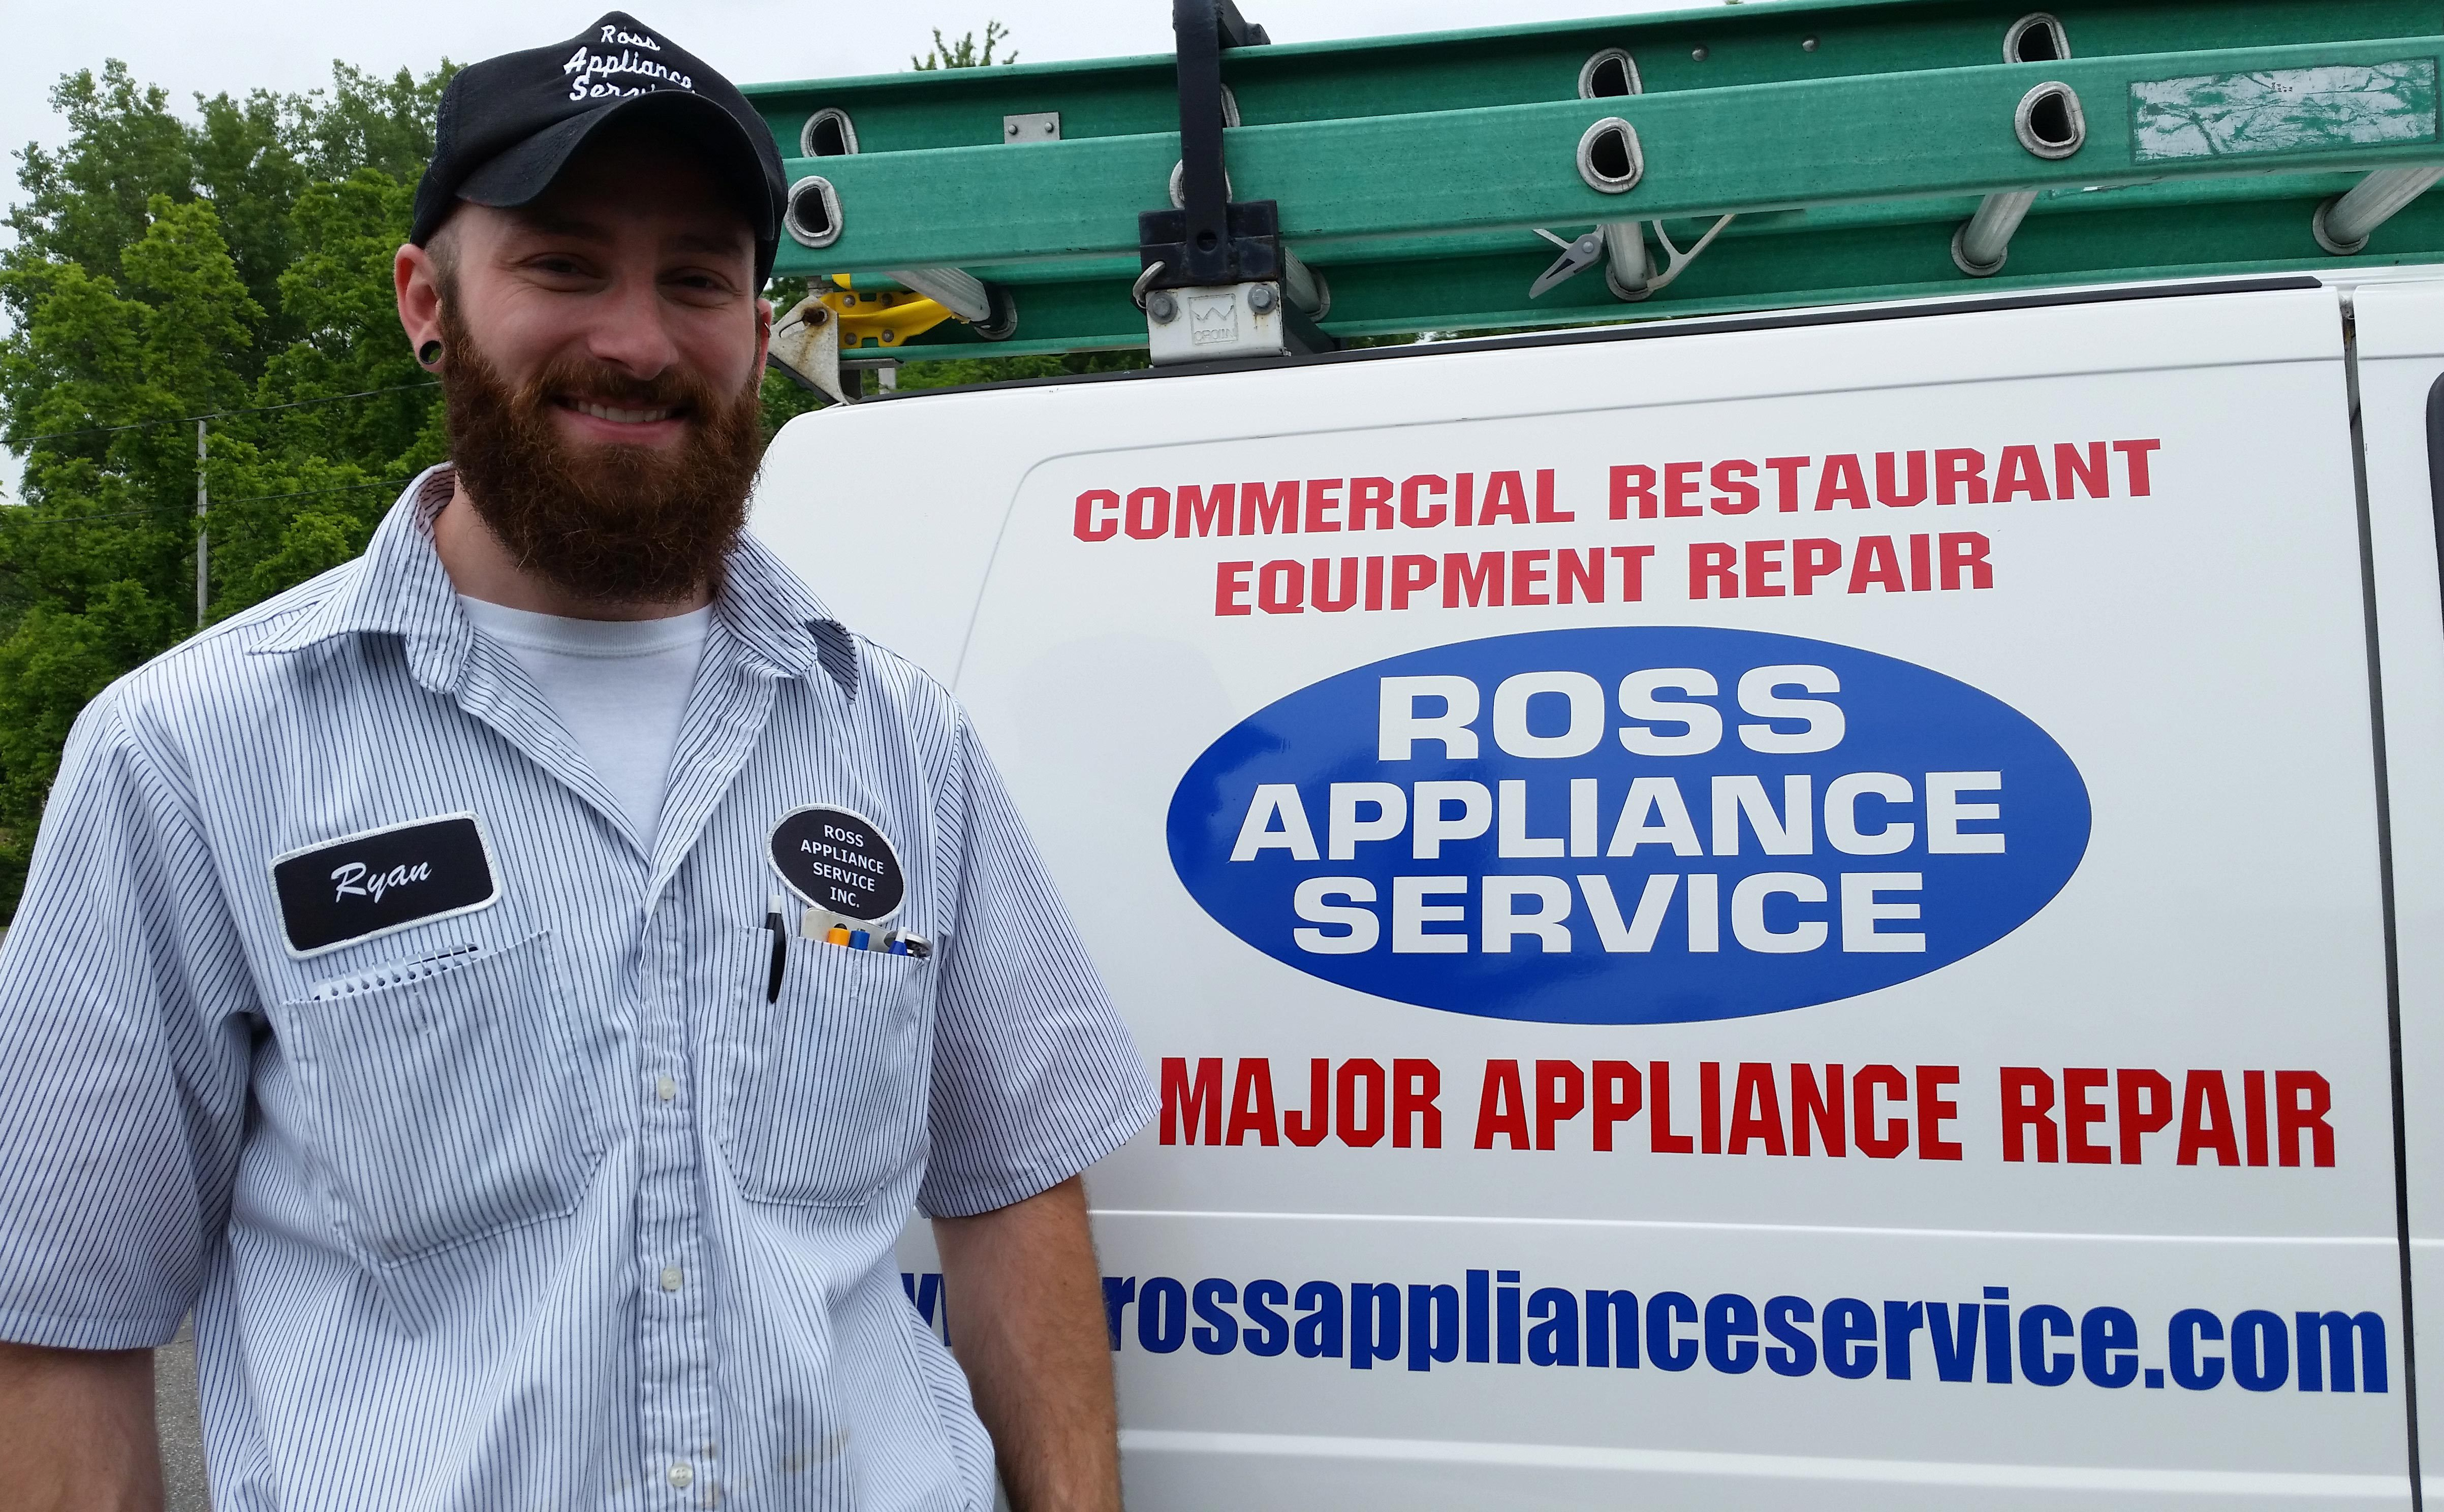 Professional of Ross Appliance Services providing dependable appliance repairs in South Amherst, OH